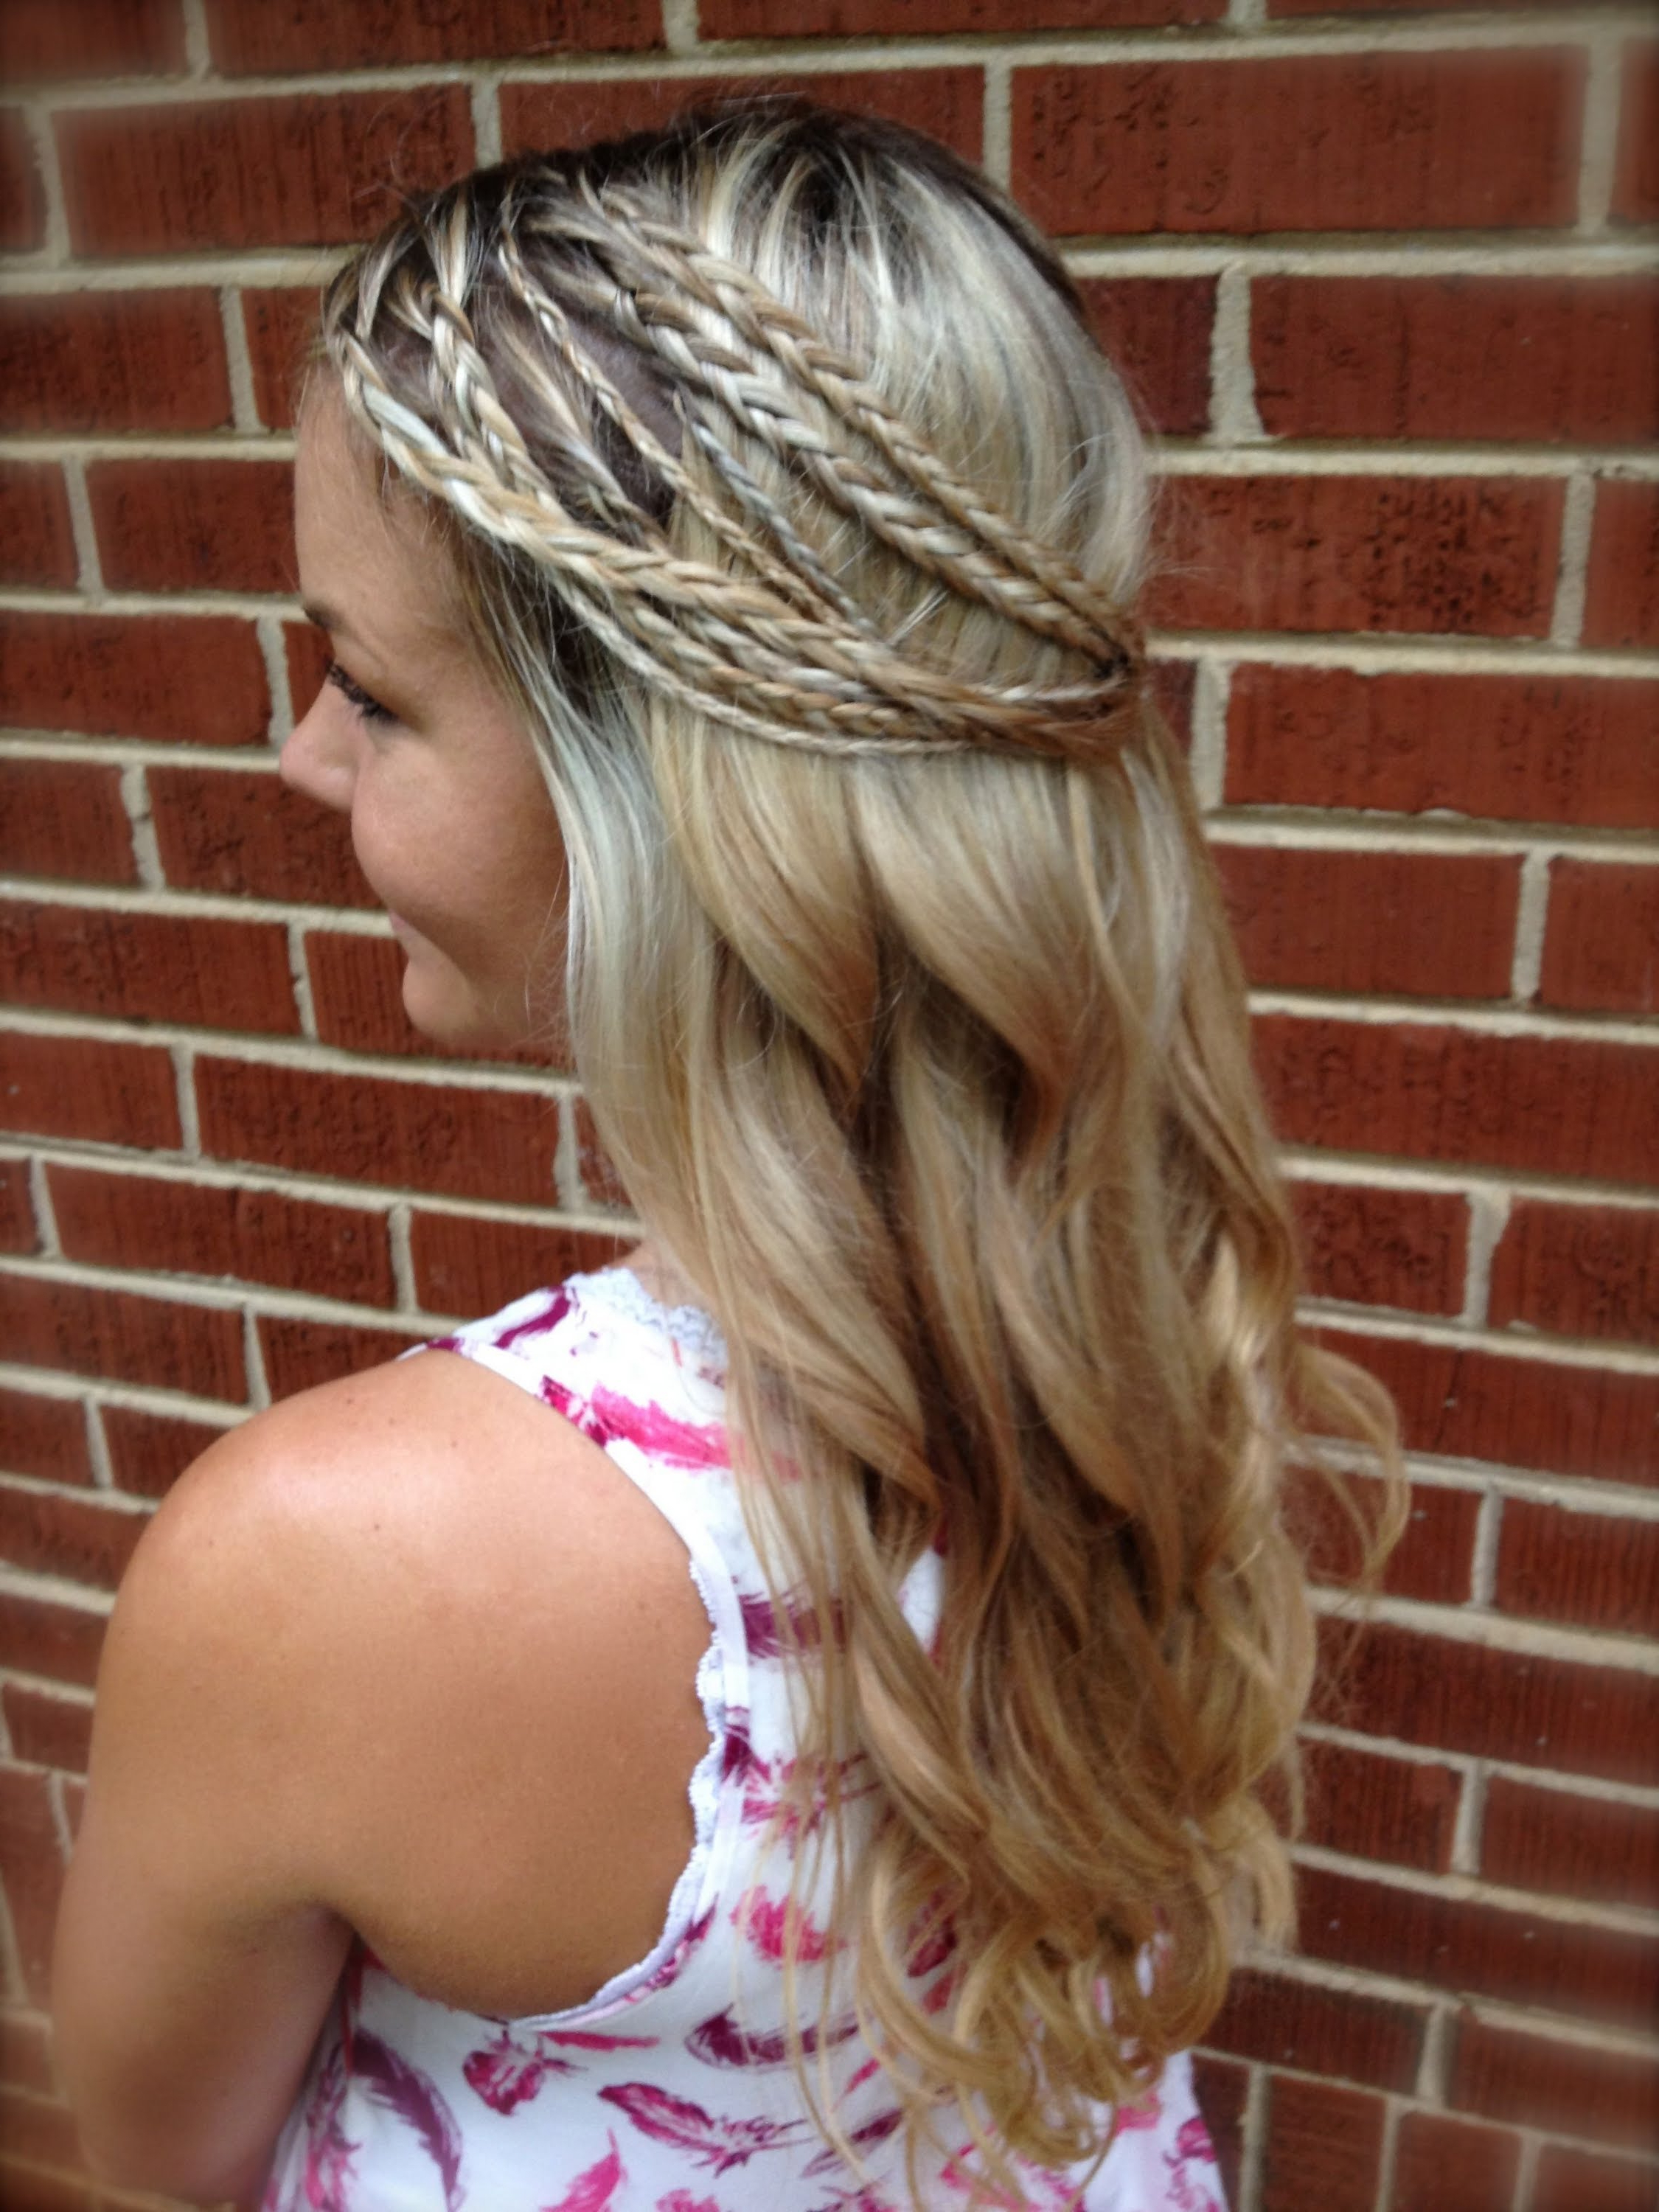 2019 Boho Half Braid Hairstyles In 55+ Trendy Head Turning Boho (Bohemian) Hairstyles For All (View 16 of 20)